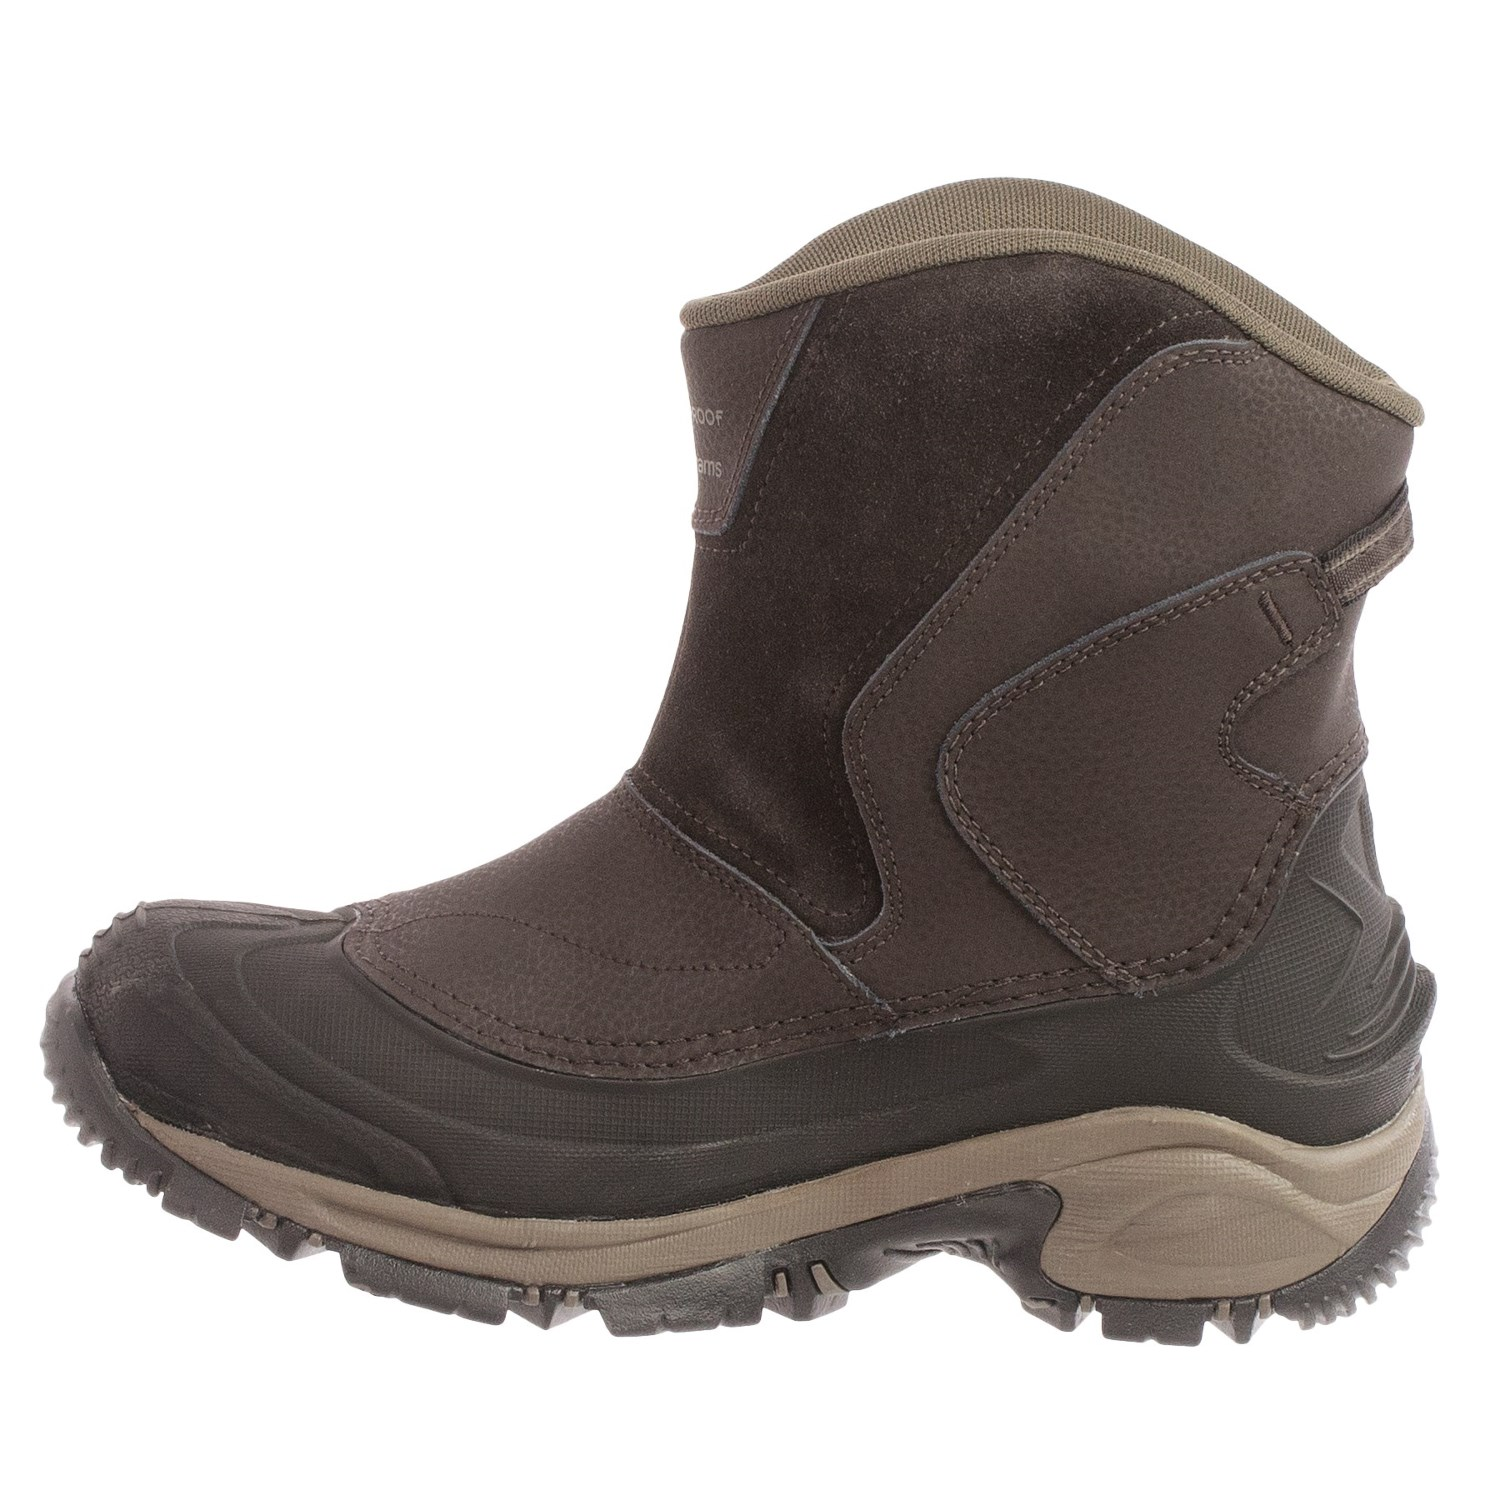 Columbia Sportswear Bugaboot Slip-On Snow Boots (For Men)